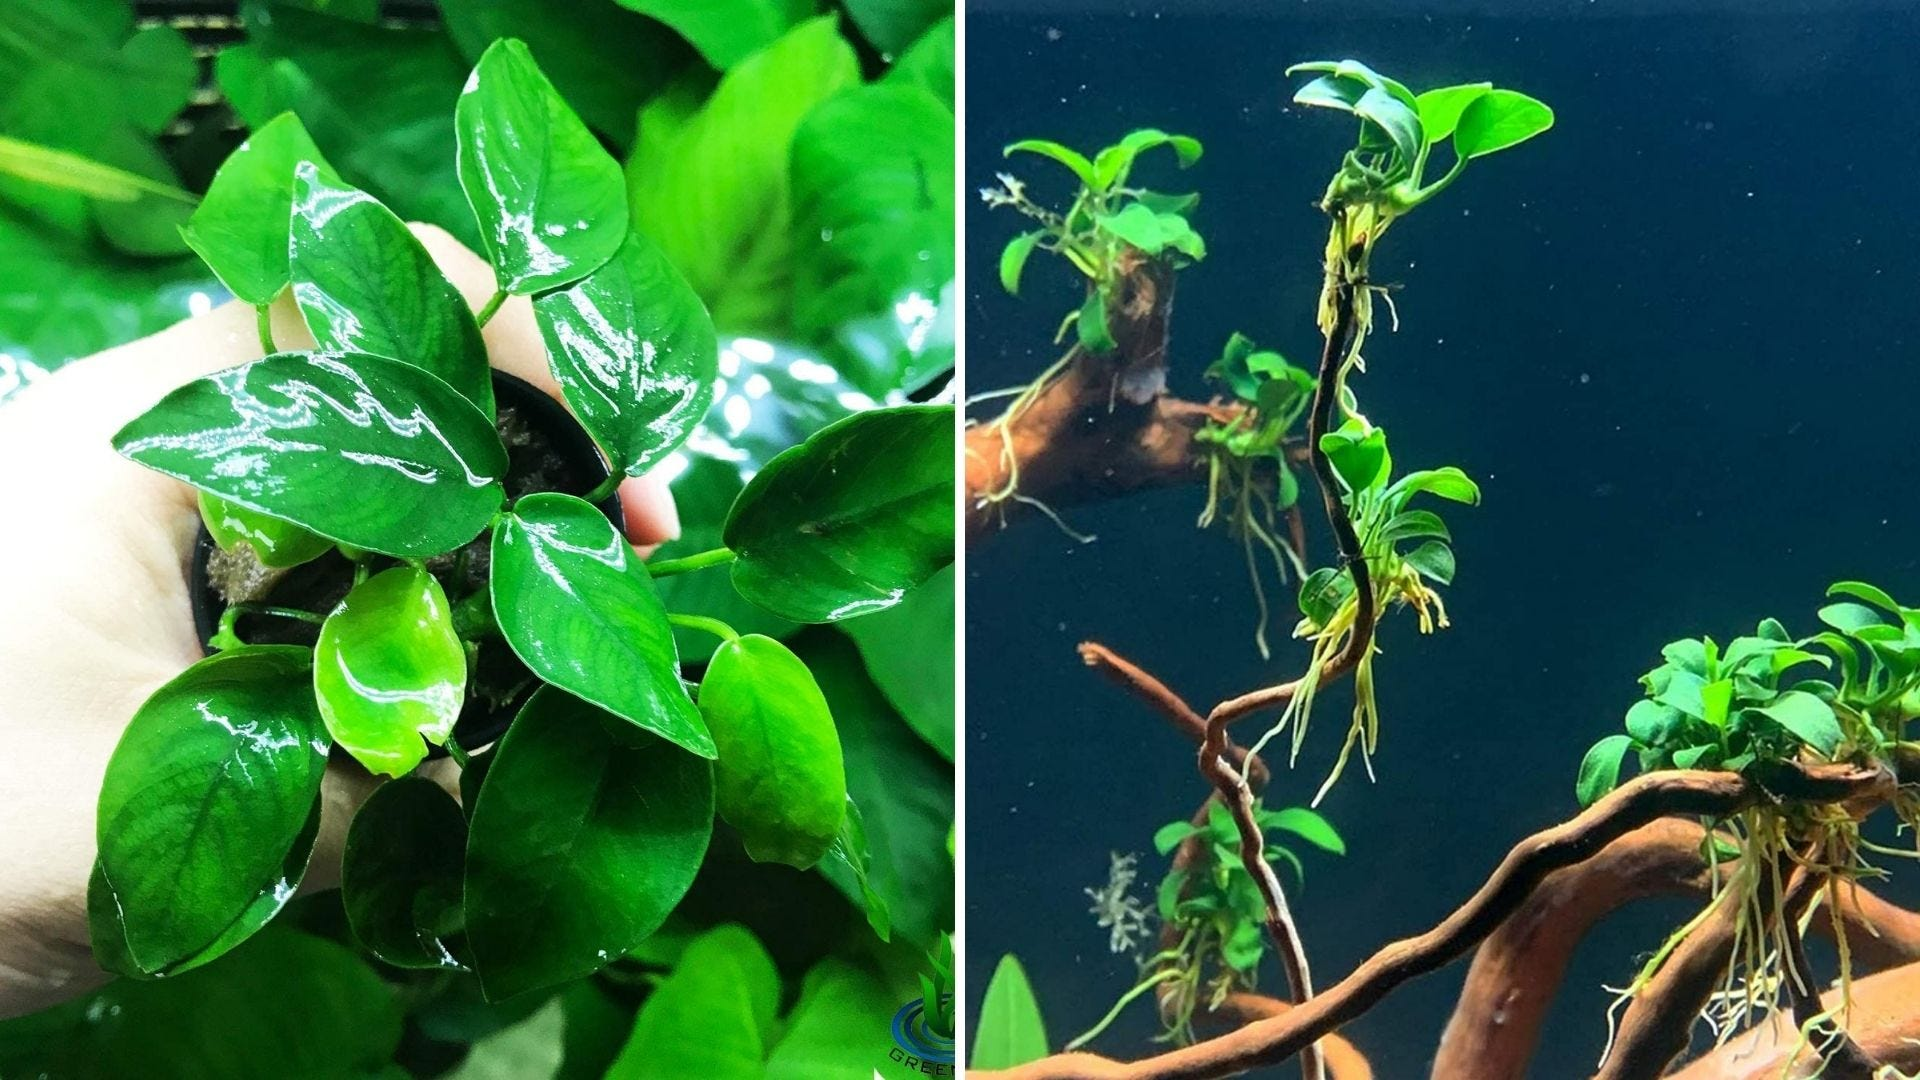 A man holds a green plant and a green plant underwater